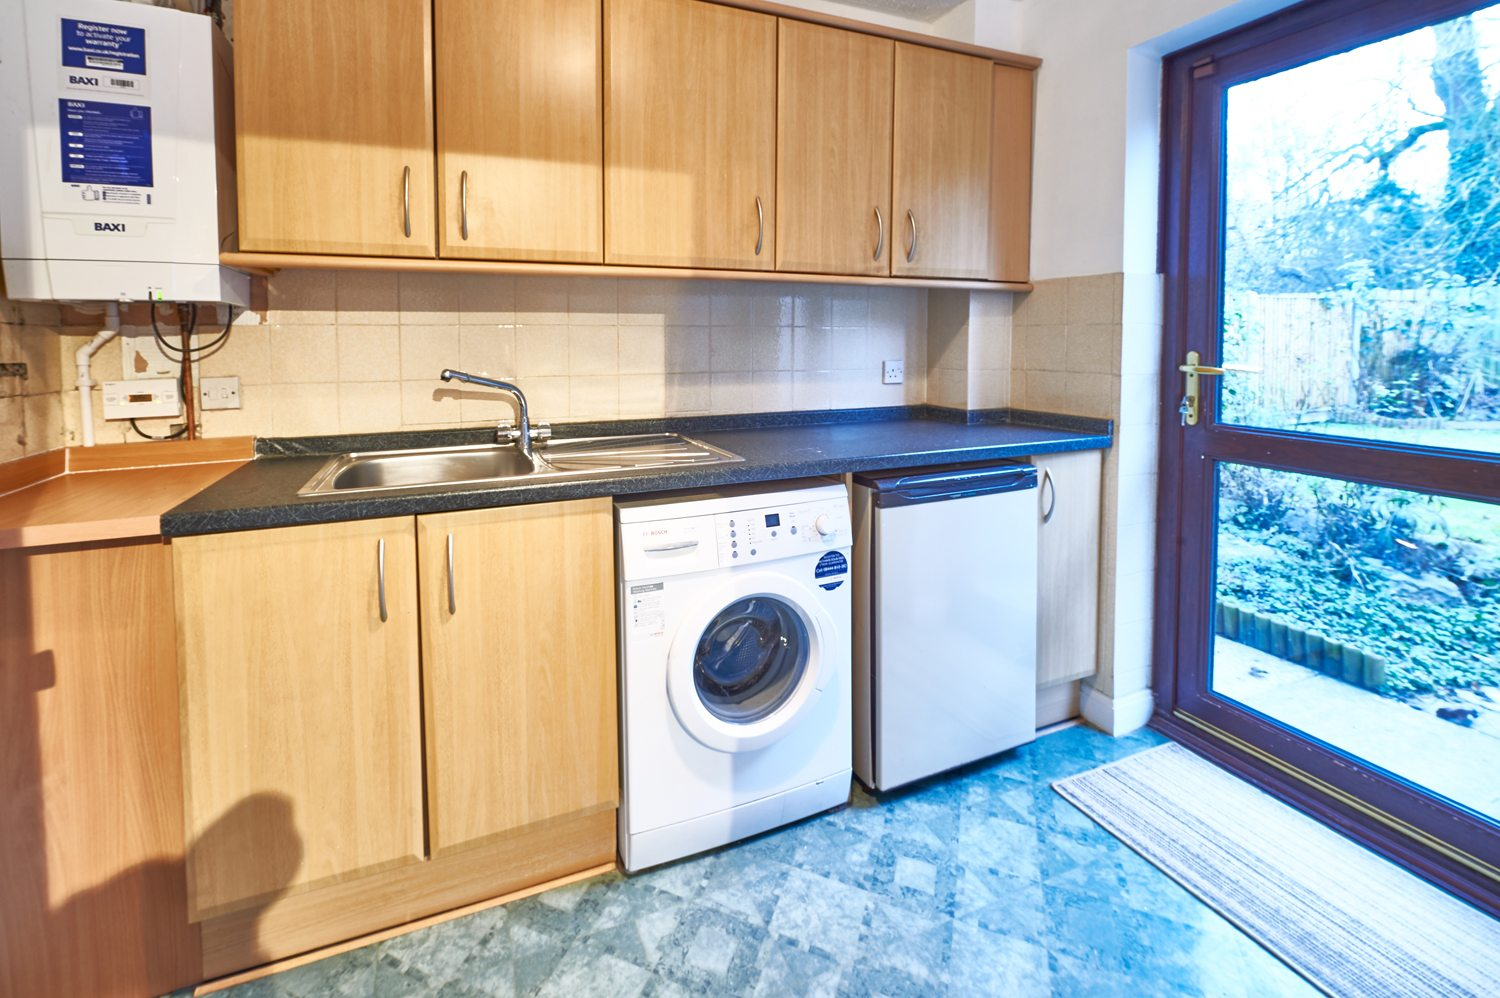 Northleigh-Serviced-Accommodation-Milton-Keynes---Fully-Equipped-Kitchen,-Modern-Design,-Cheap-Prices,-Close-To-Train-Station---Book-Urban-Stay-Corporate-Serviced-Apartments-today!!